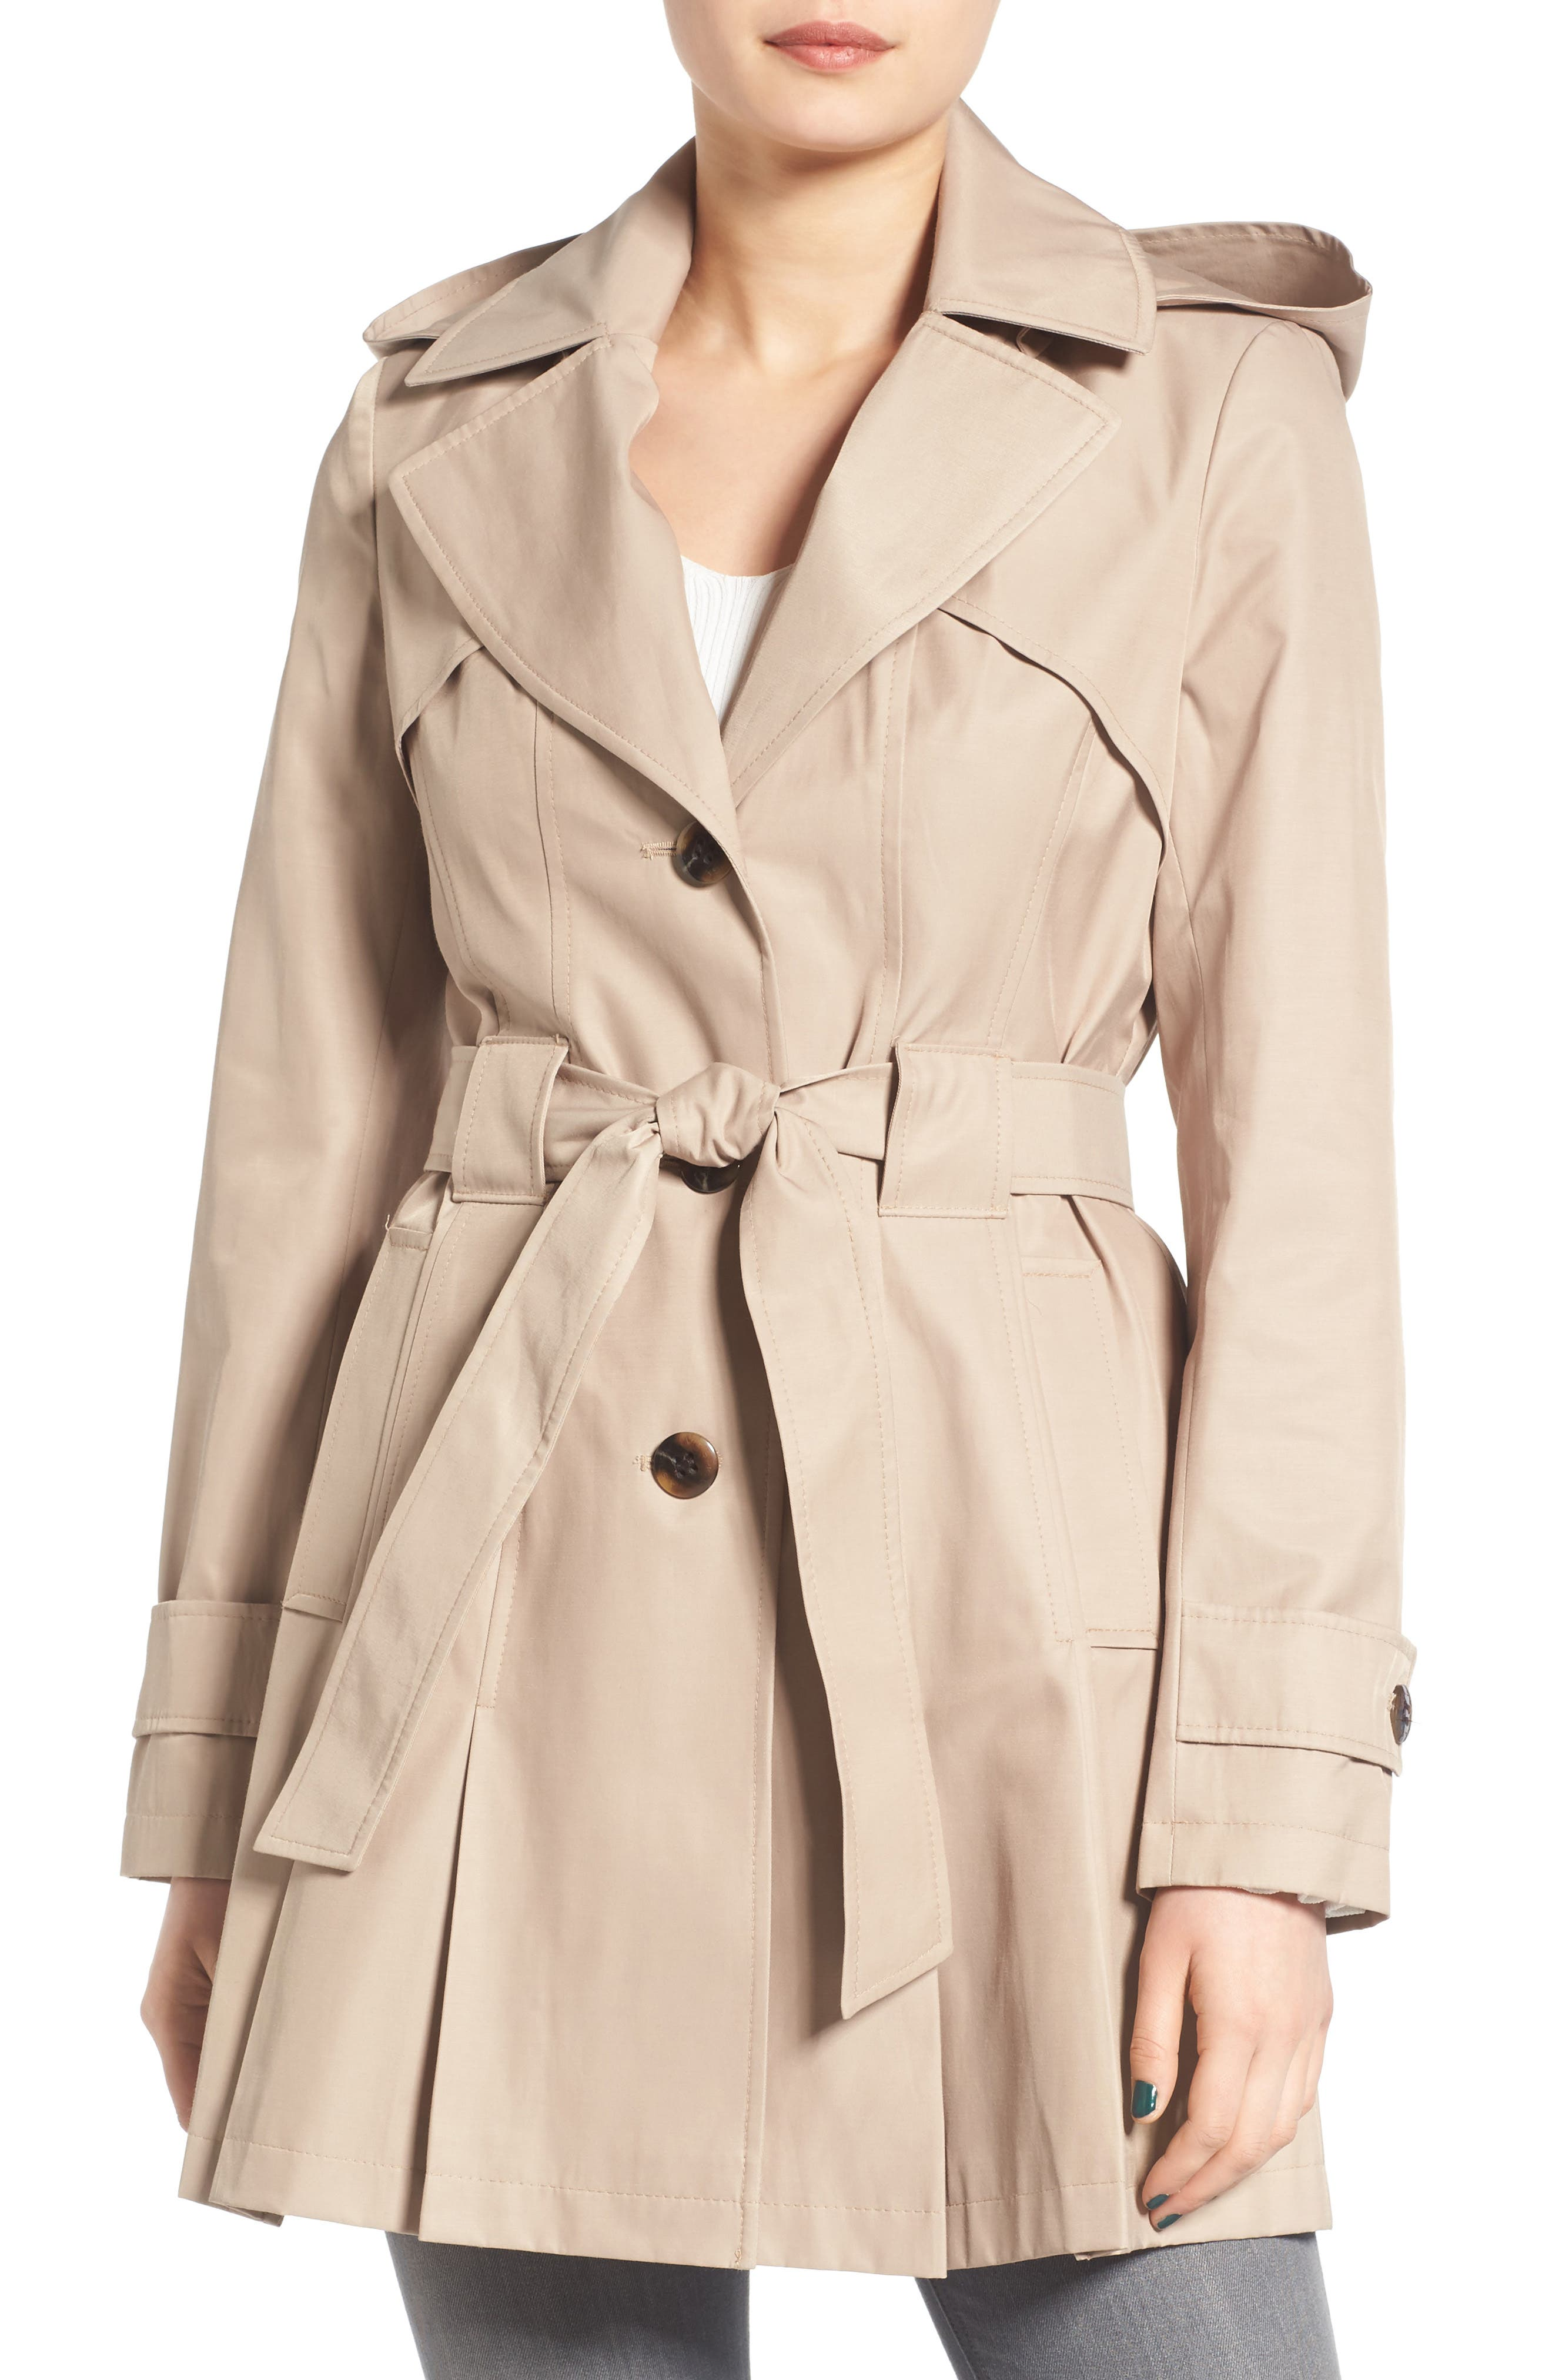 'Scarpa' Hooded Single Breasted Trench Coat,                             Main thumbnail 1, color,                             257